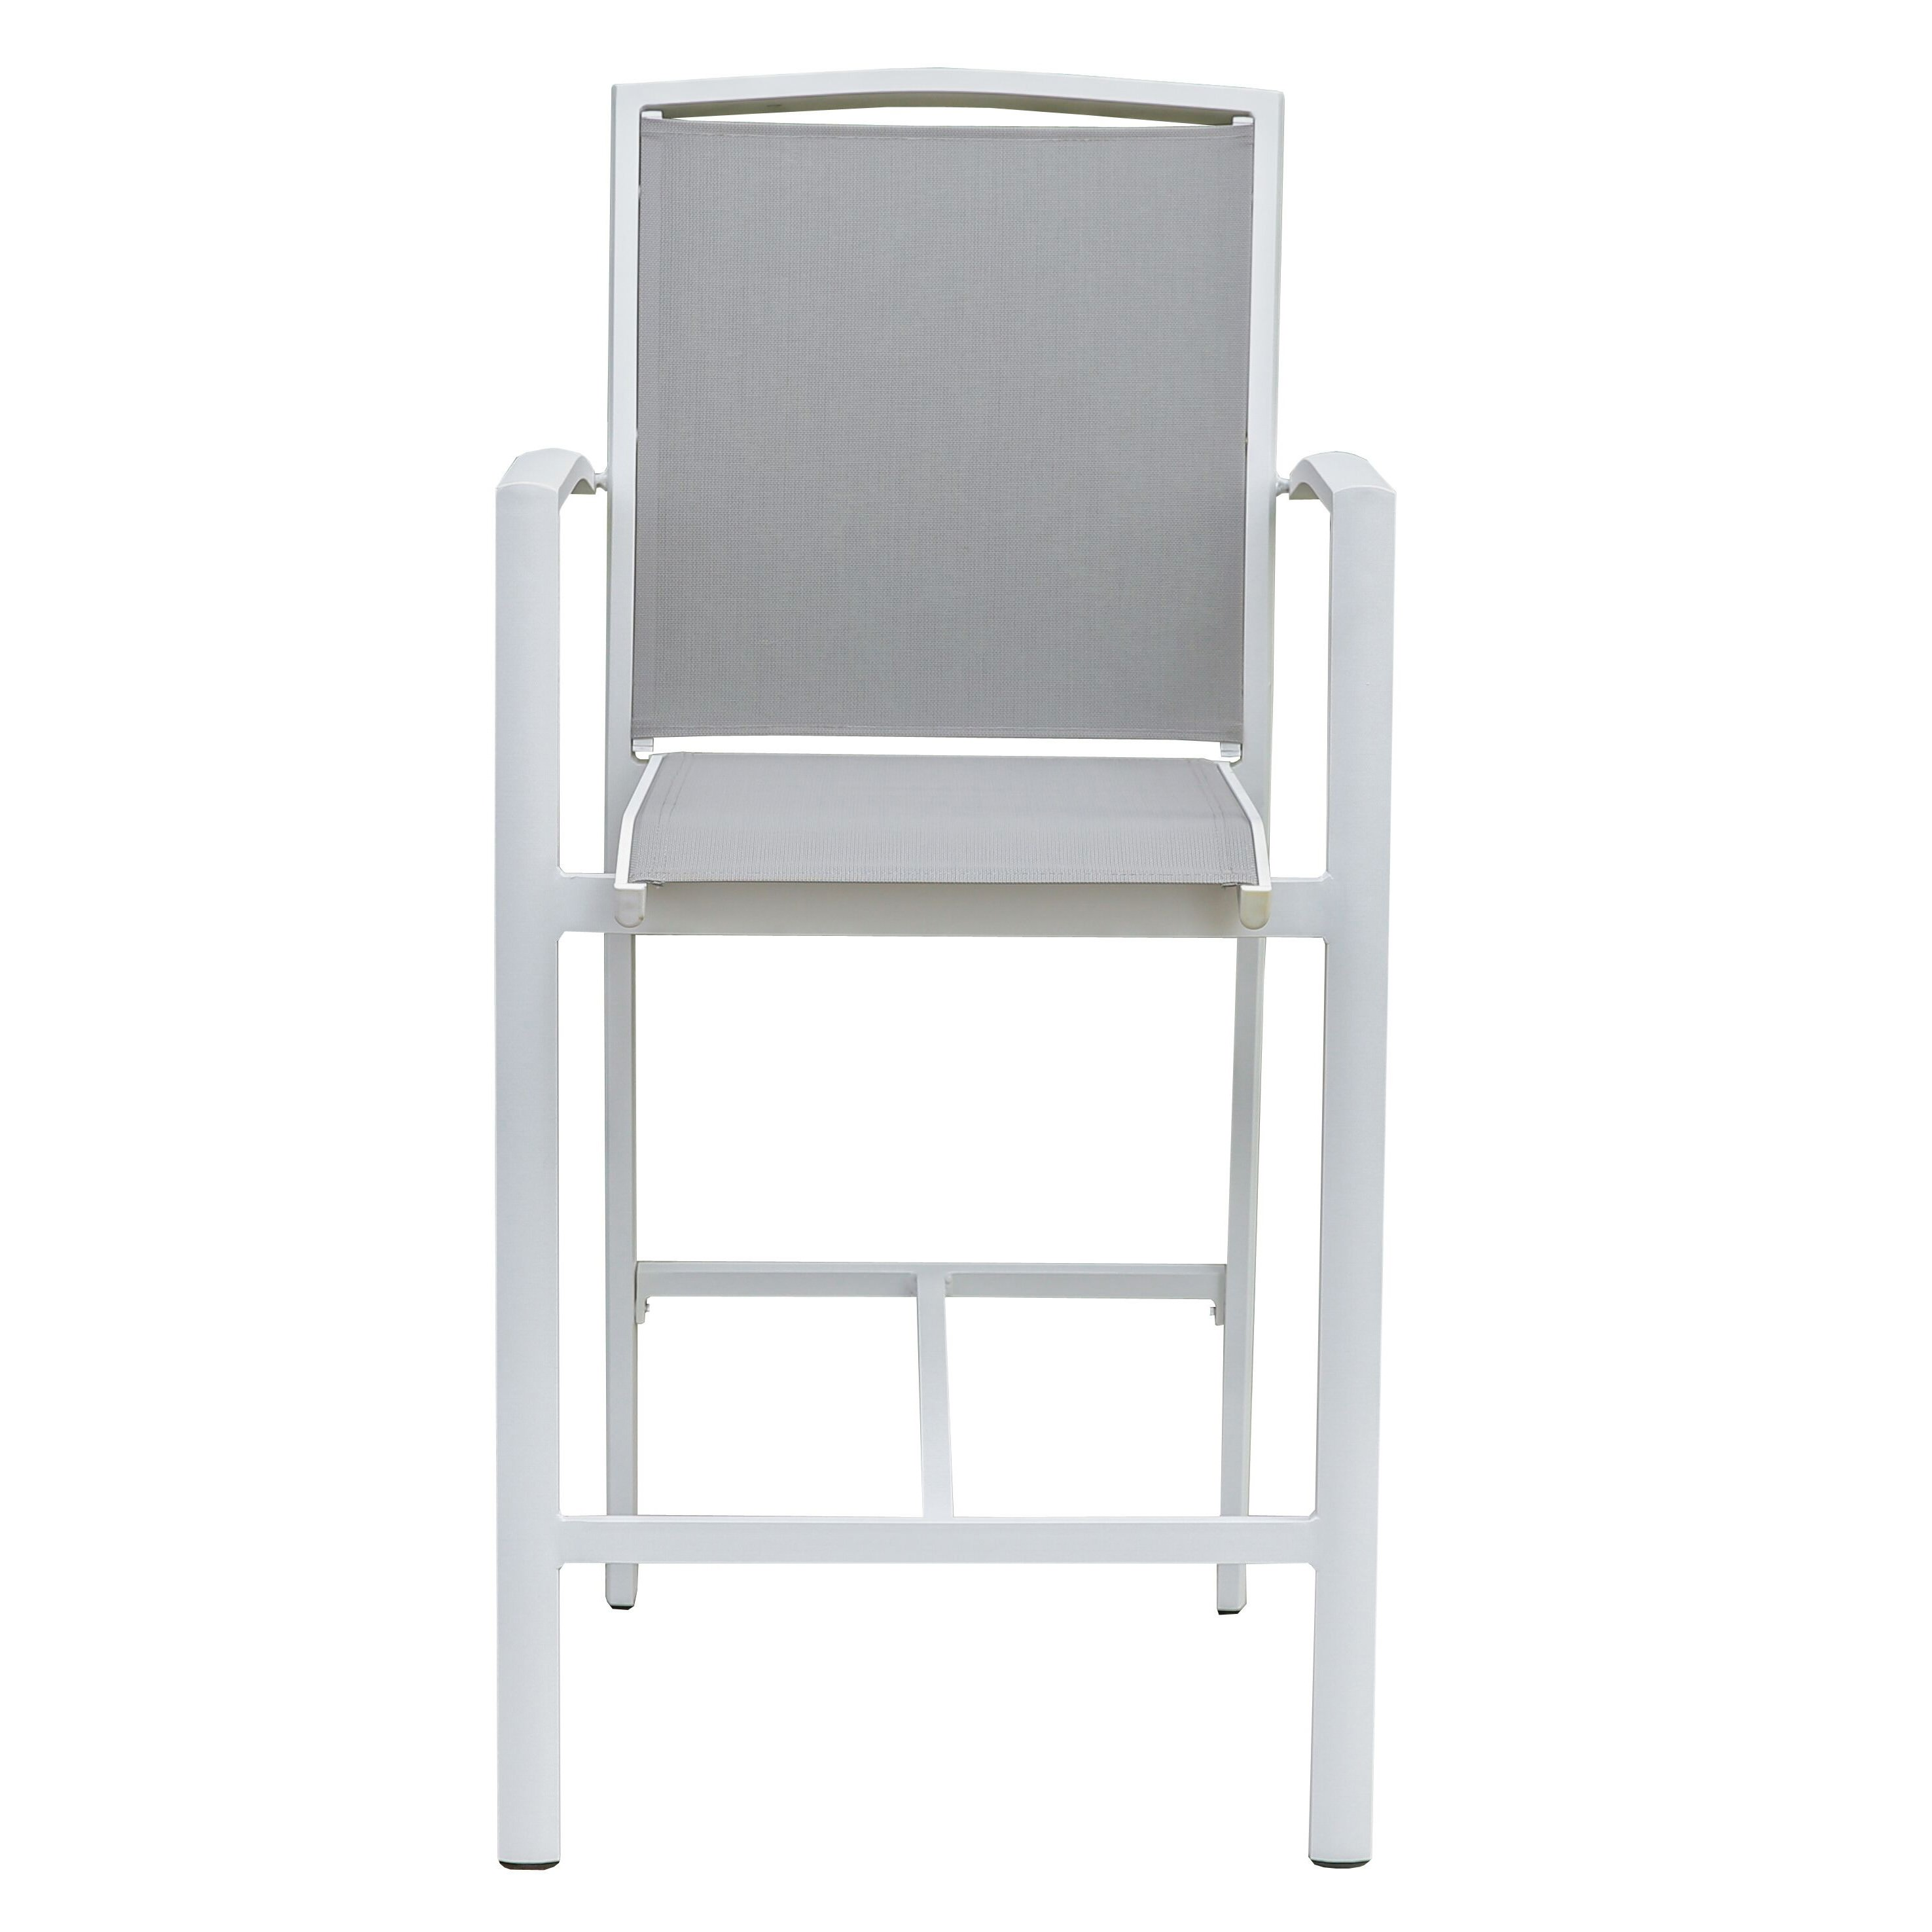 Costa Fixed Bar Chair, White / Grey